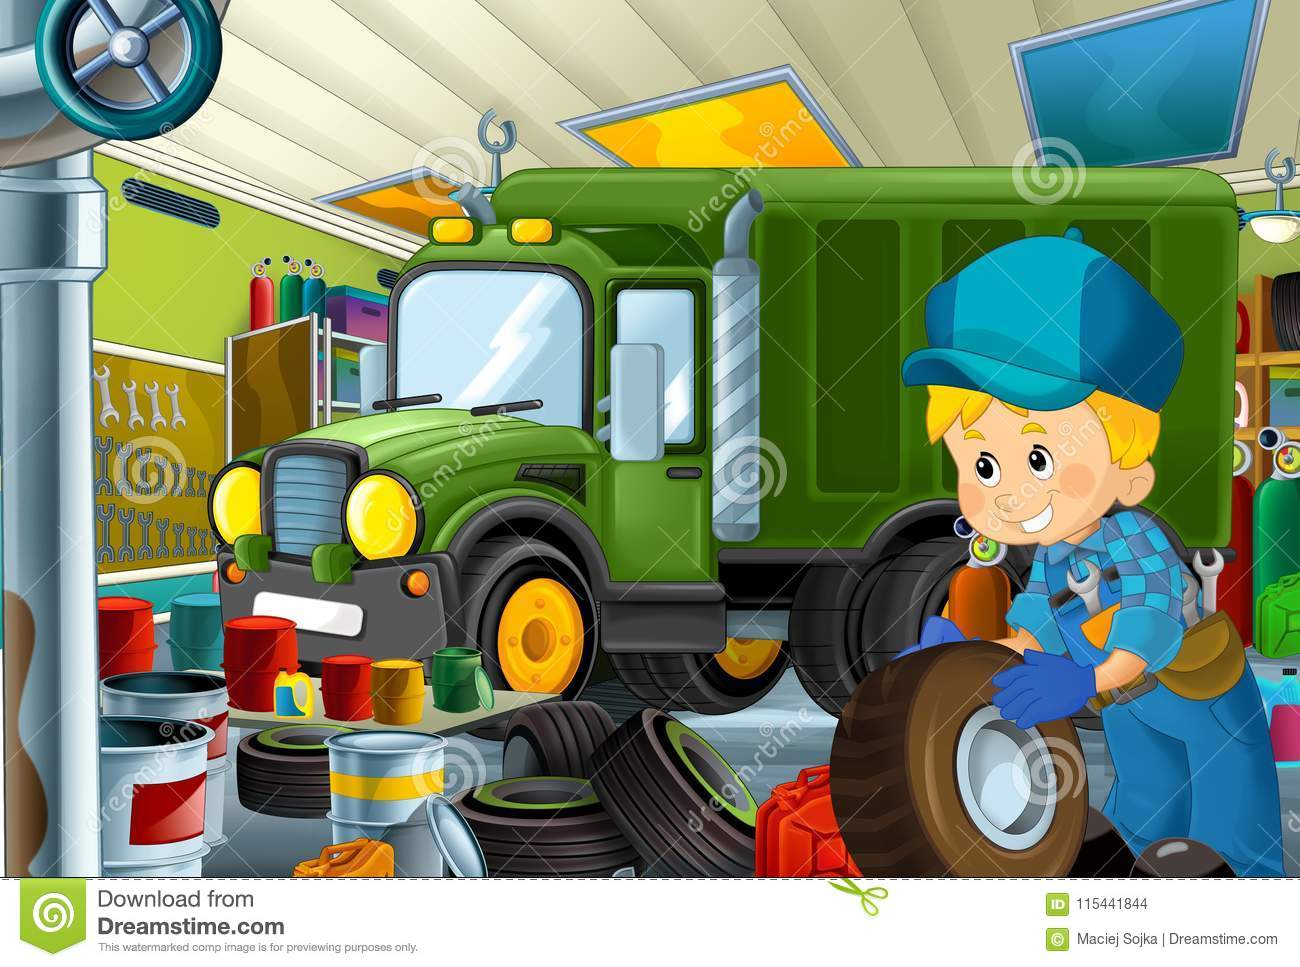 Cartoon scene with garage mechanic working repairing some vehicle - military car - or cleaning work place